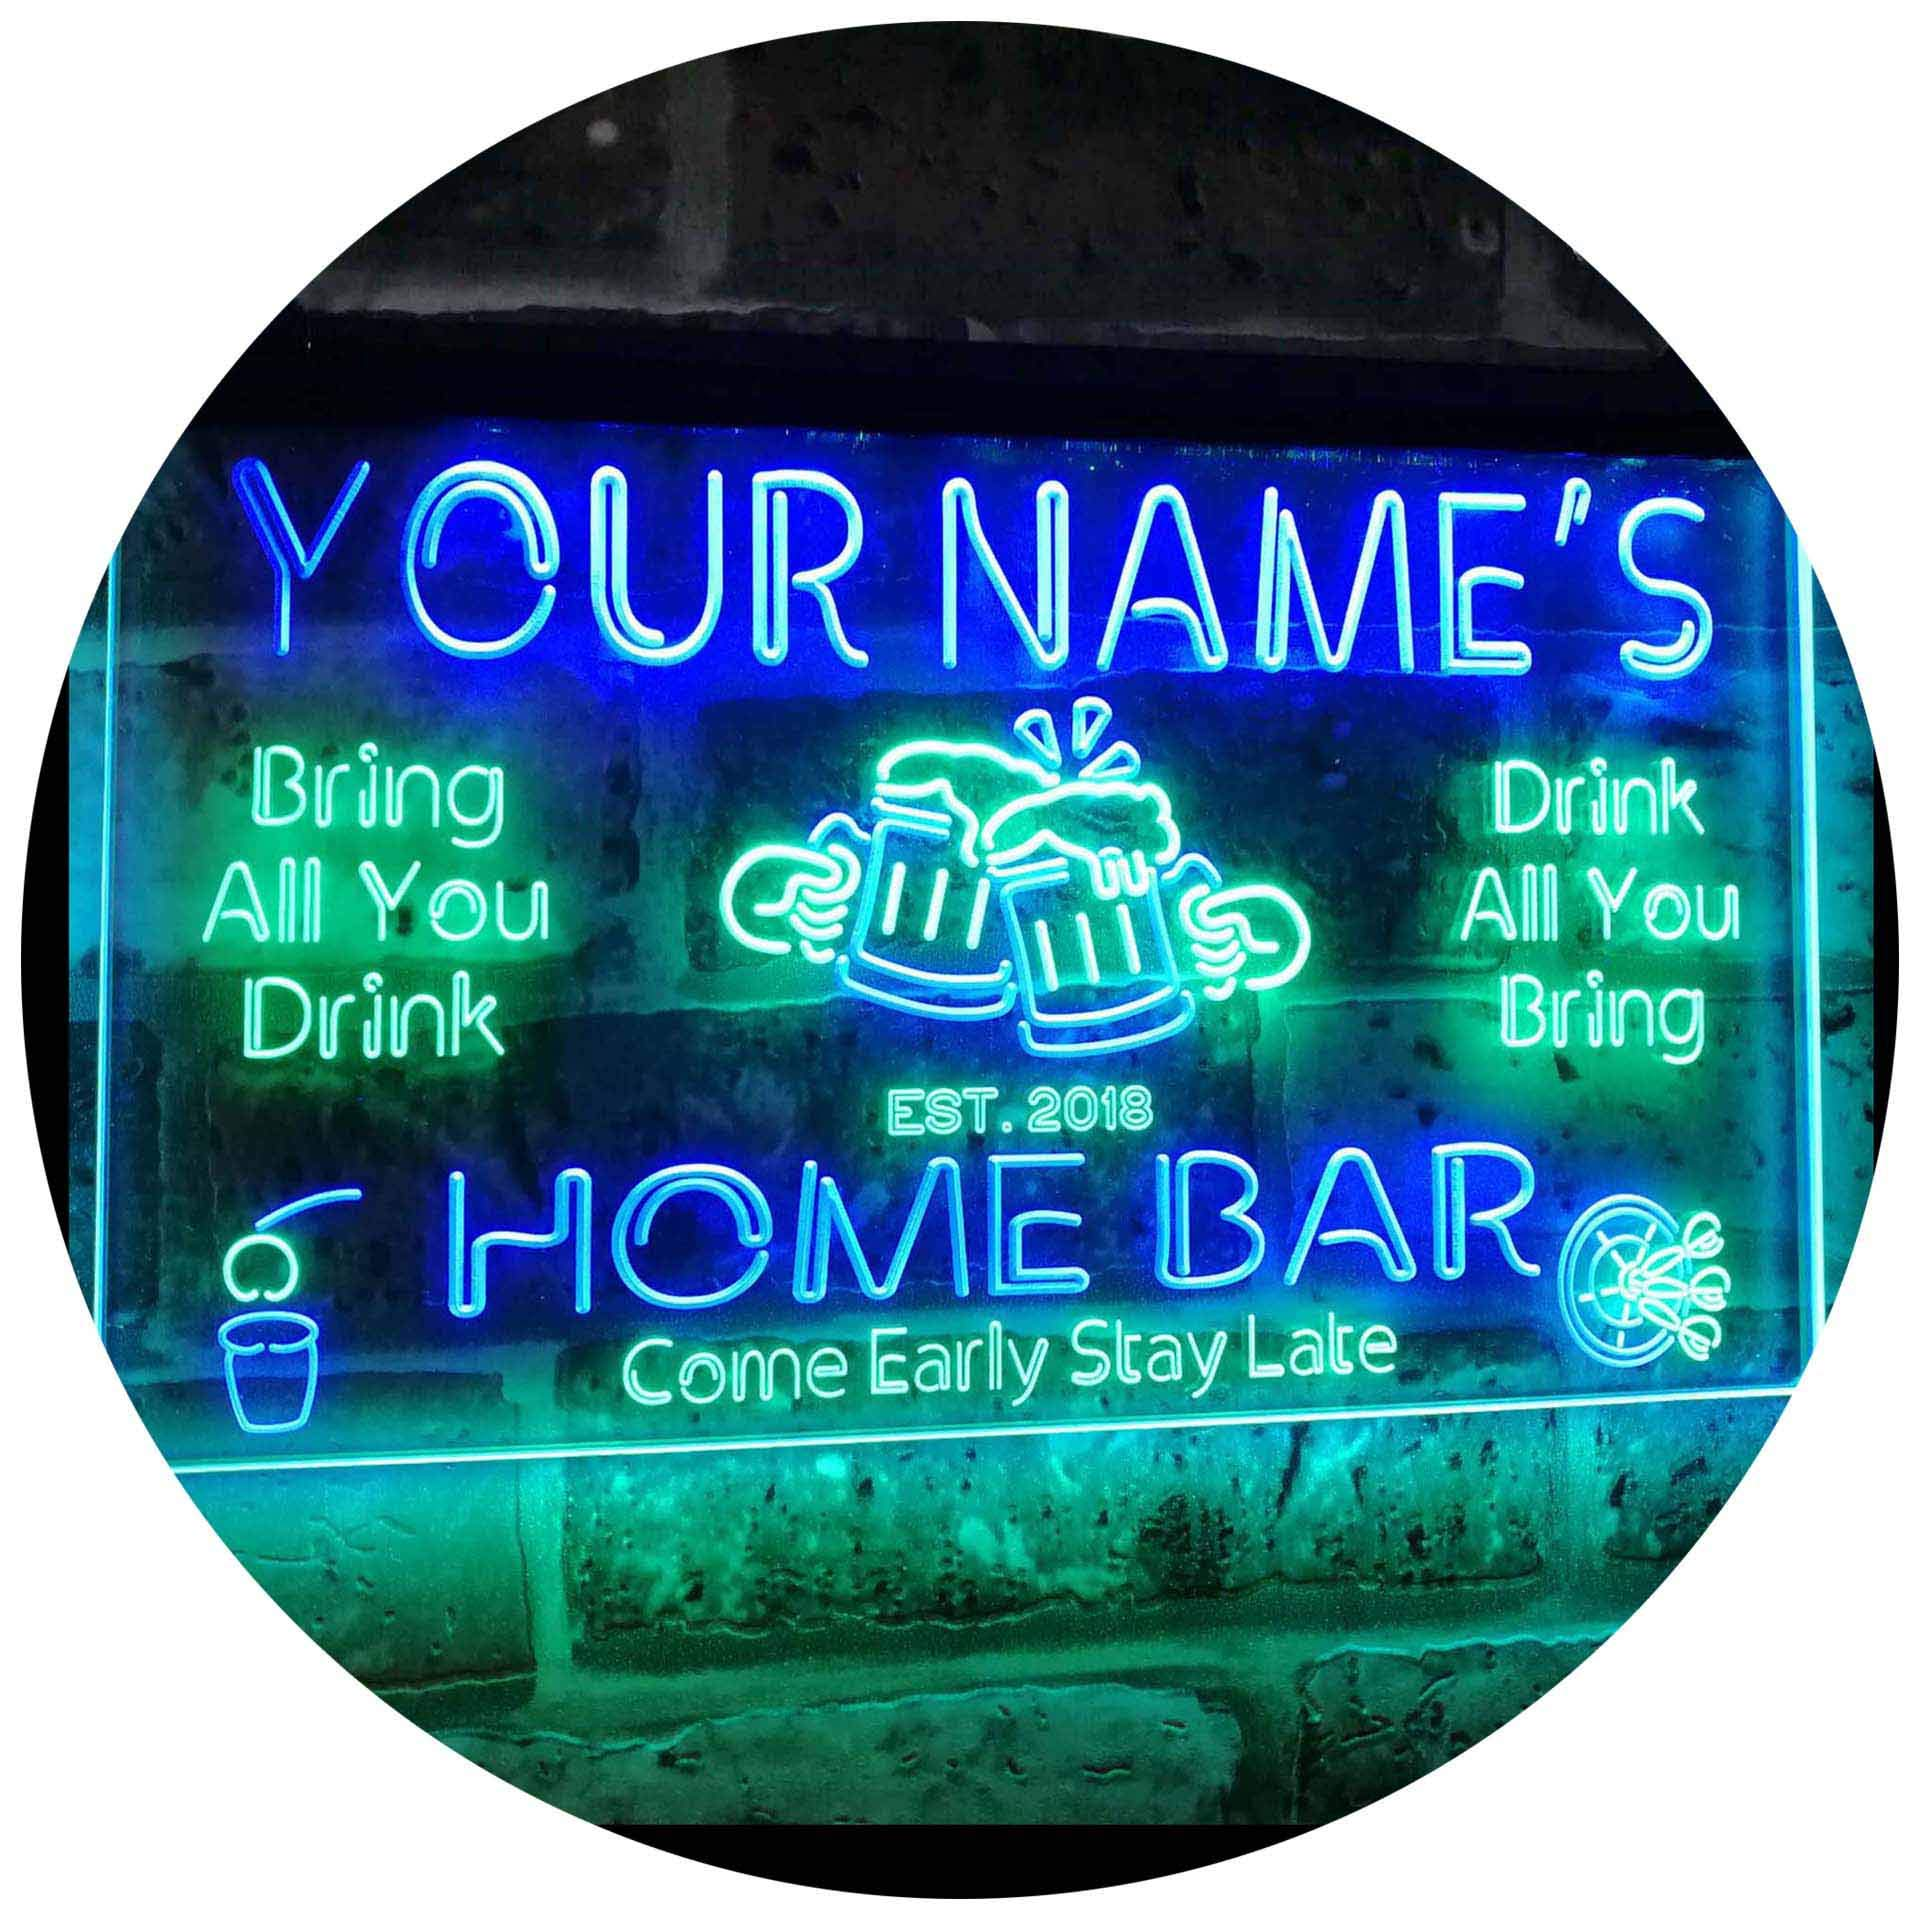 ADVPRO Personalized Your Name Custom Home Bar Beer Established Year Dual Color LED Neon Sign Green & Blue 16 x 12 Inches st6s43-p1-tm-gb